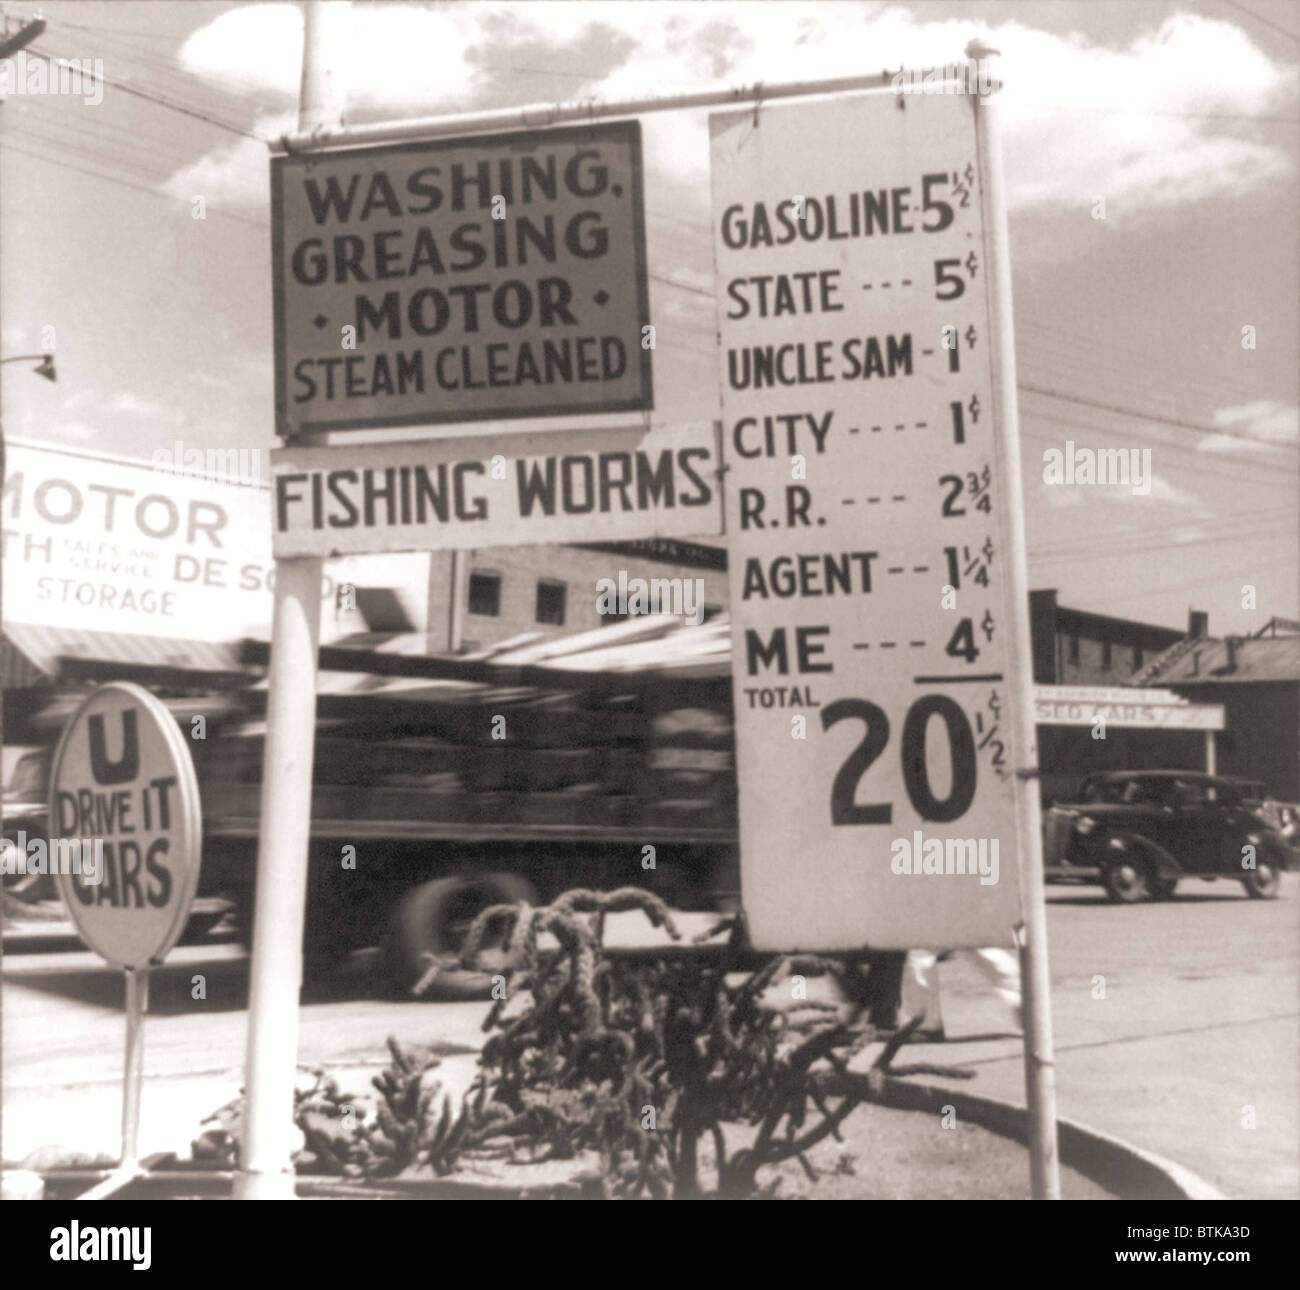 The Great Depression. Gas station sign itemizing taxes and fees imposed by different layers of government that raise - Stock Image